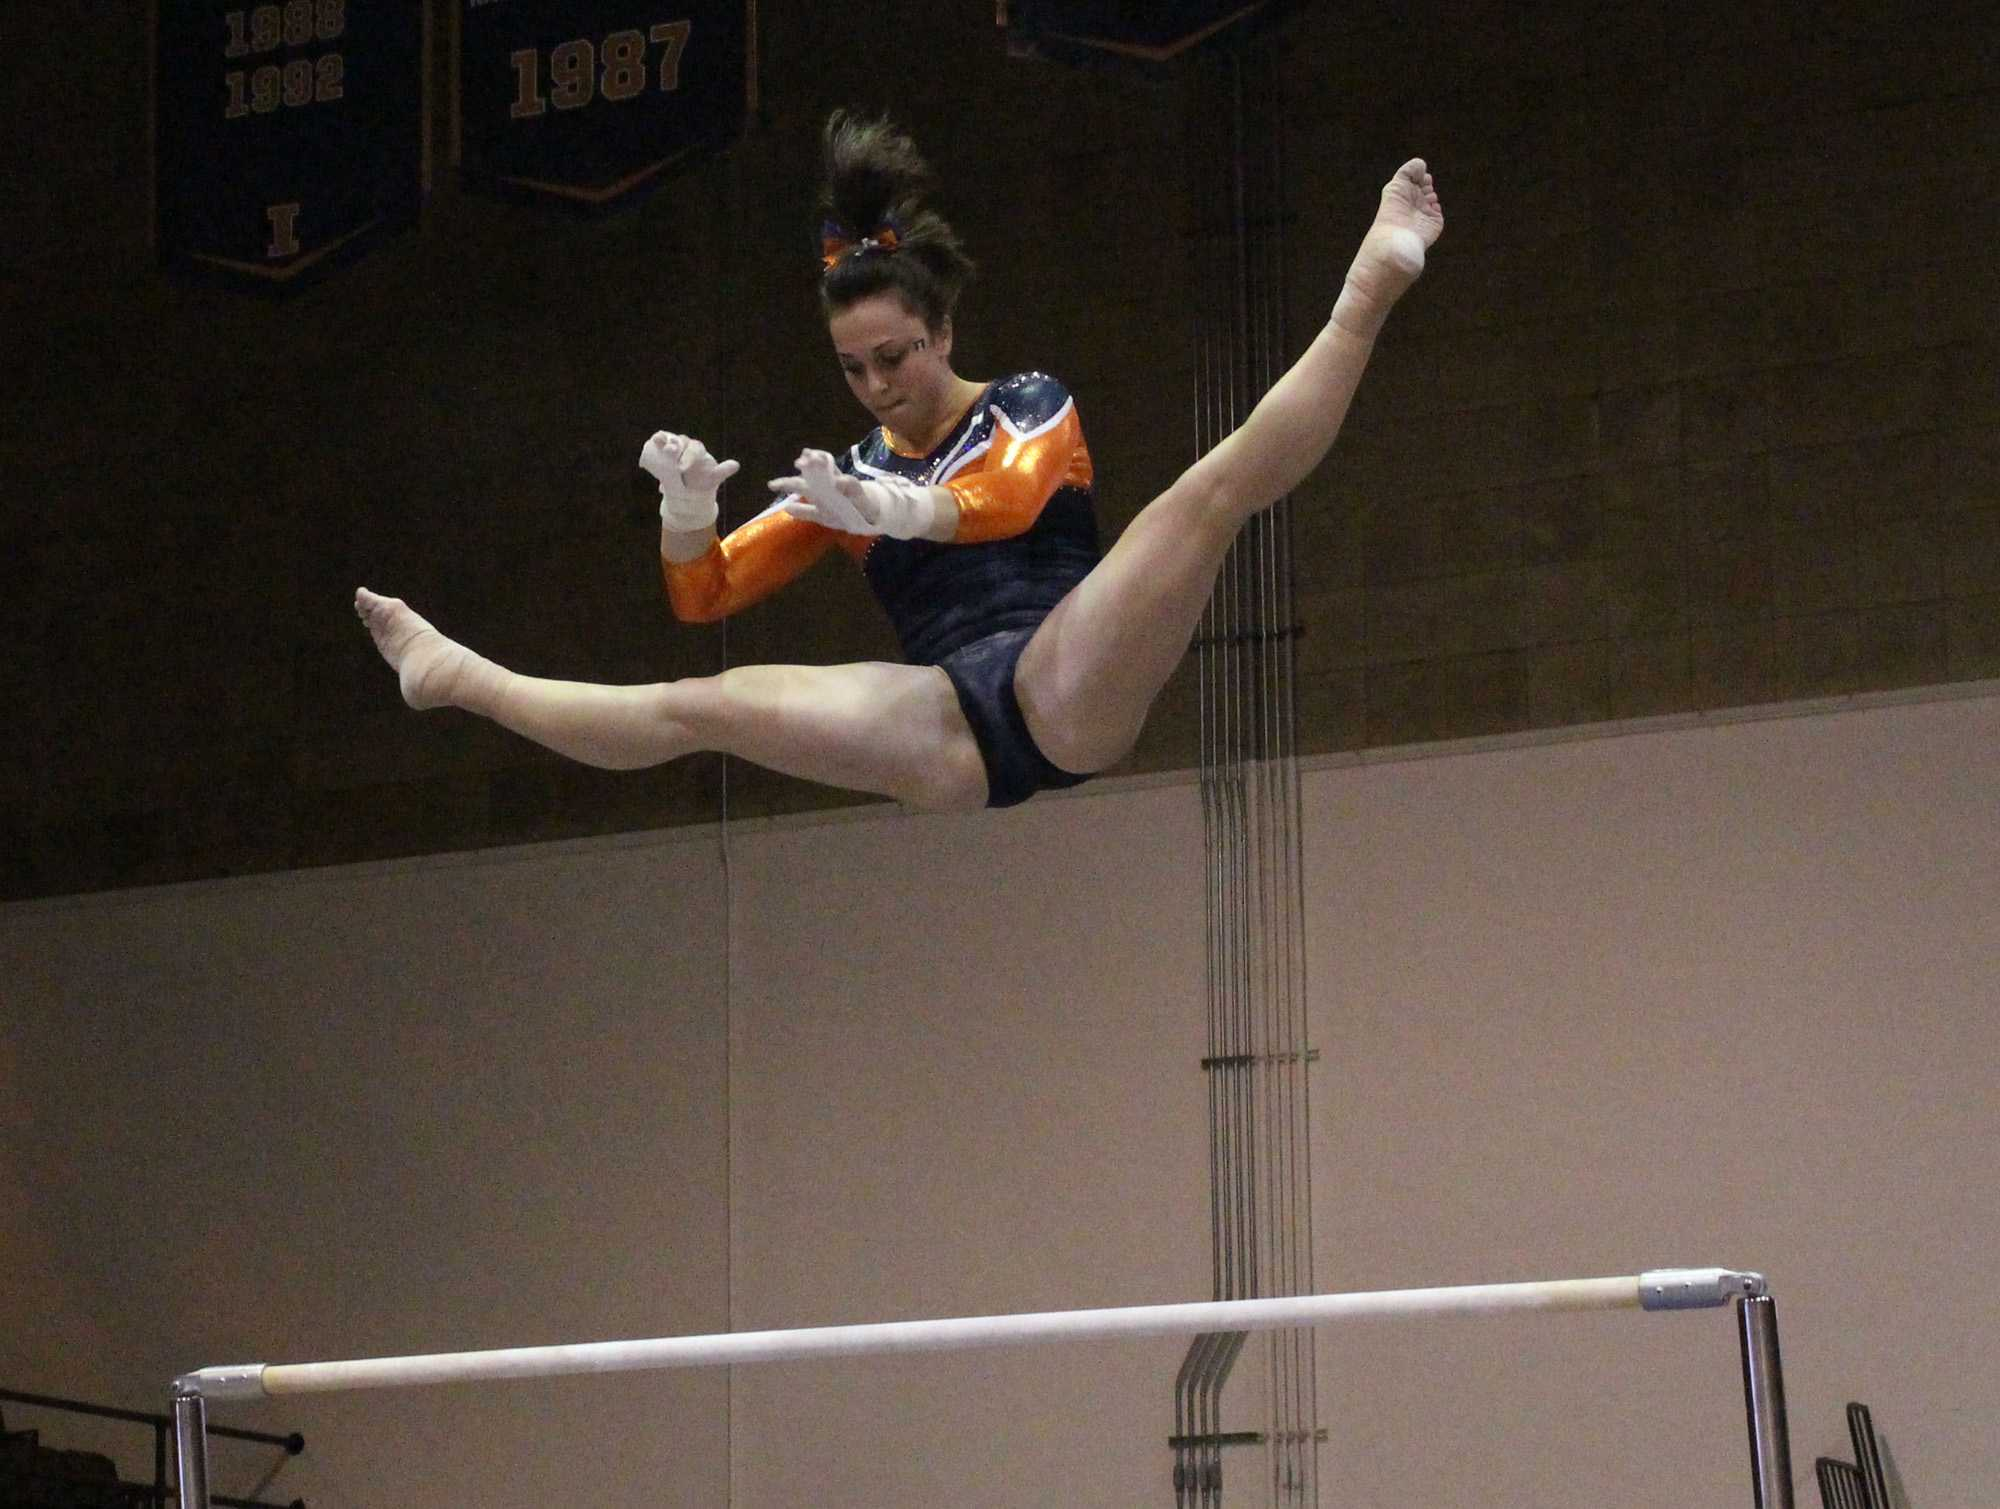 Giana O'Connor on the bars during the match against Michigan at Huff Hall on January 22, 2016. Michigan won 196.825 to 195.15.